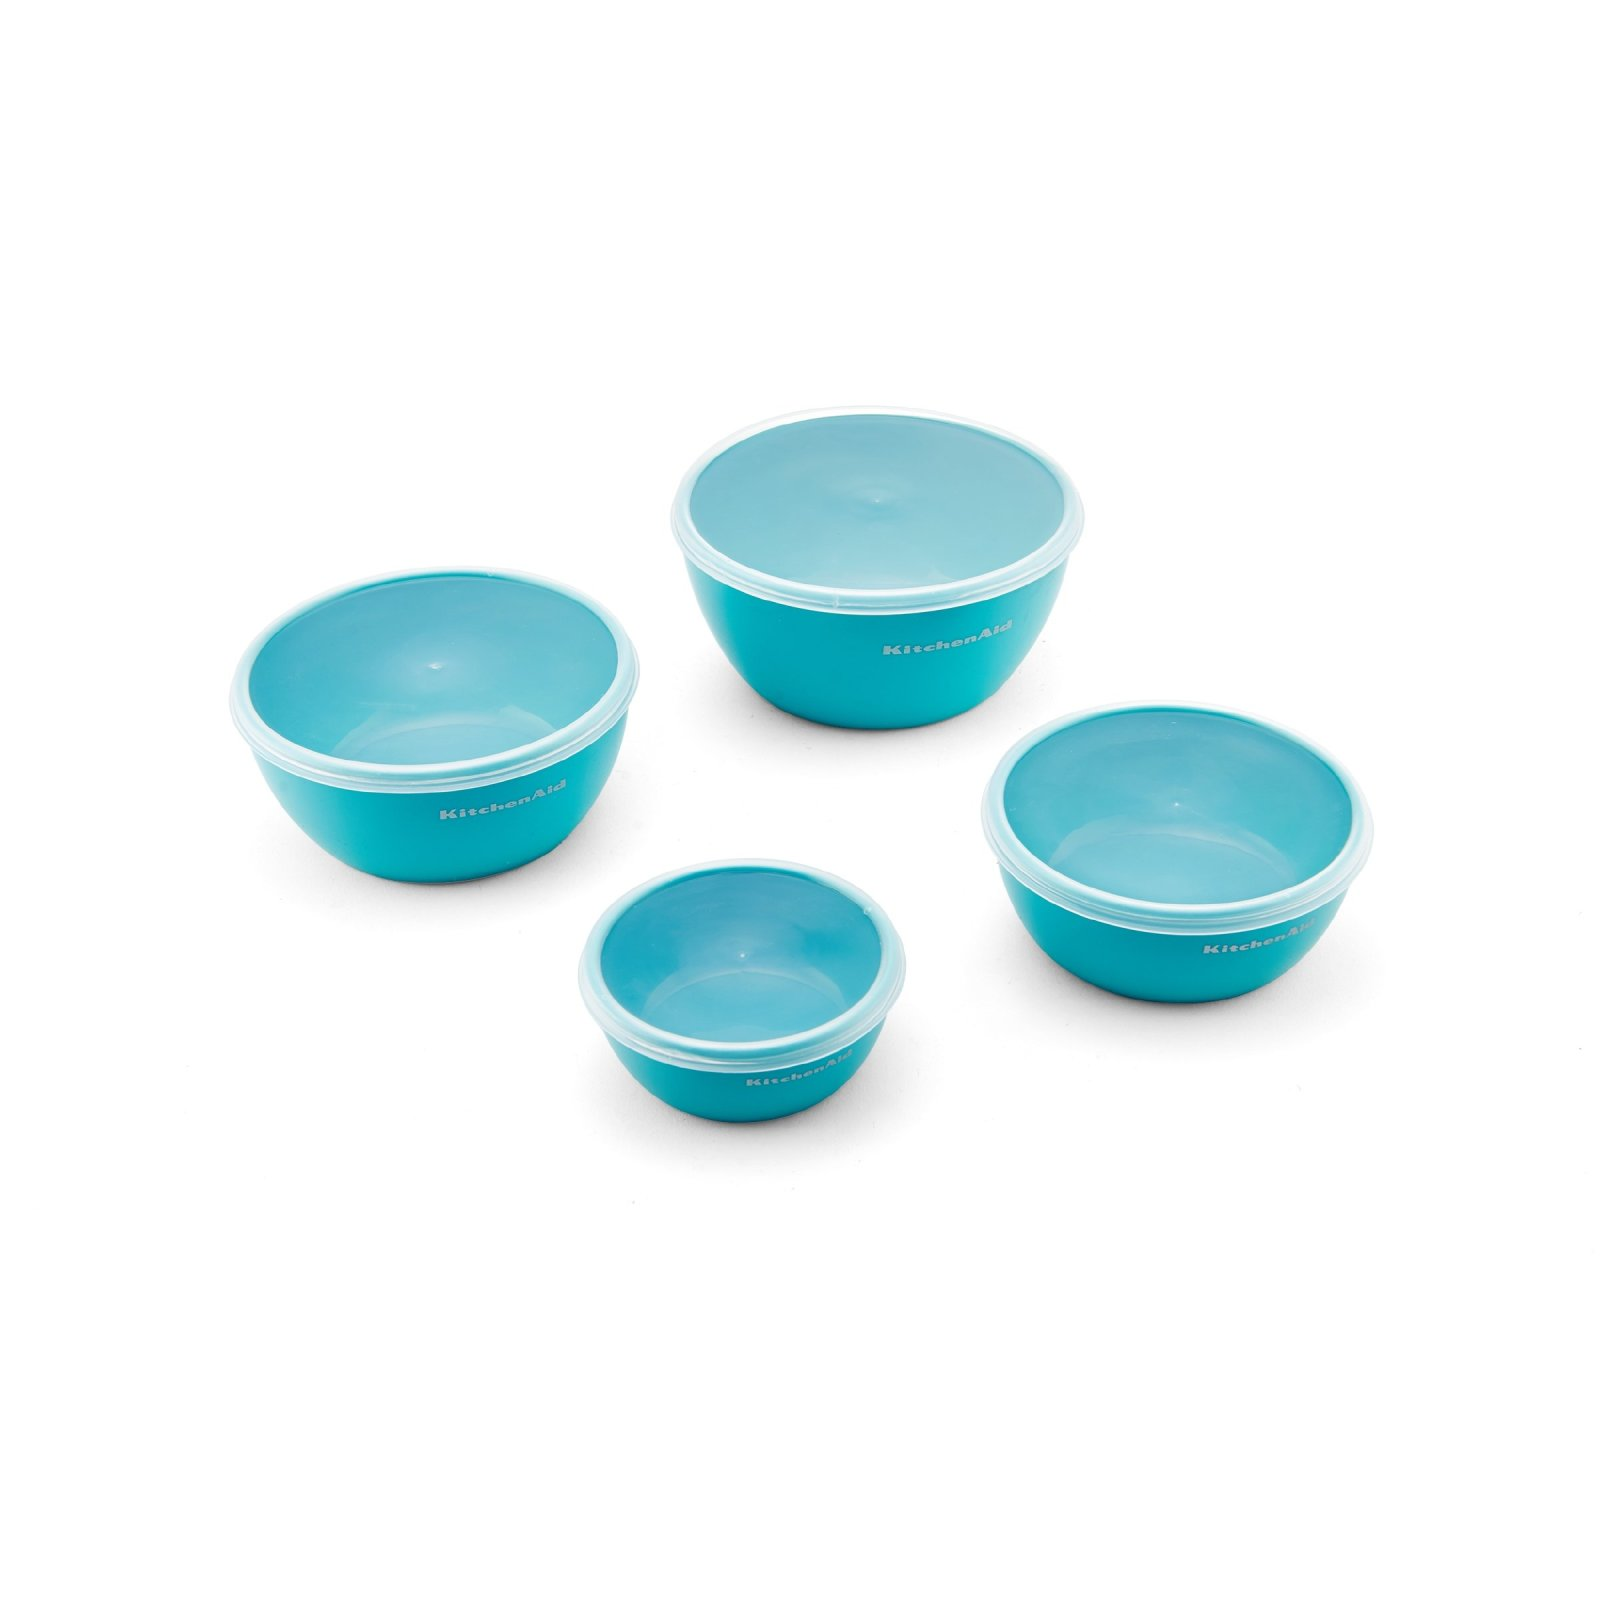 KitchenAid Prep Bowls (Set of 4), Aqua Sky 24131326938 | eBay